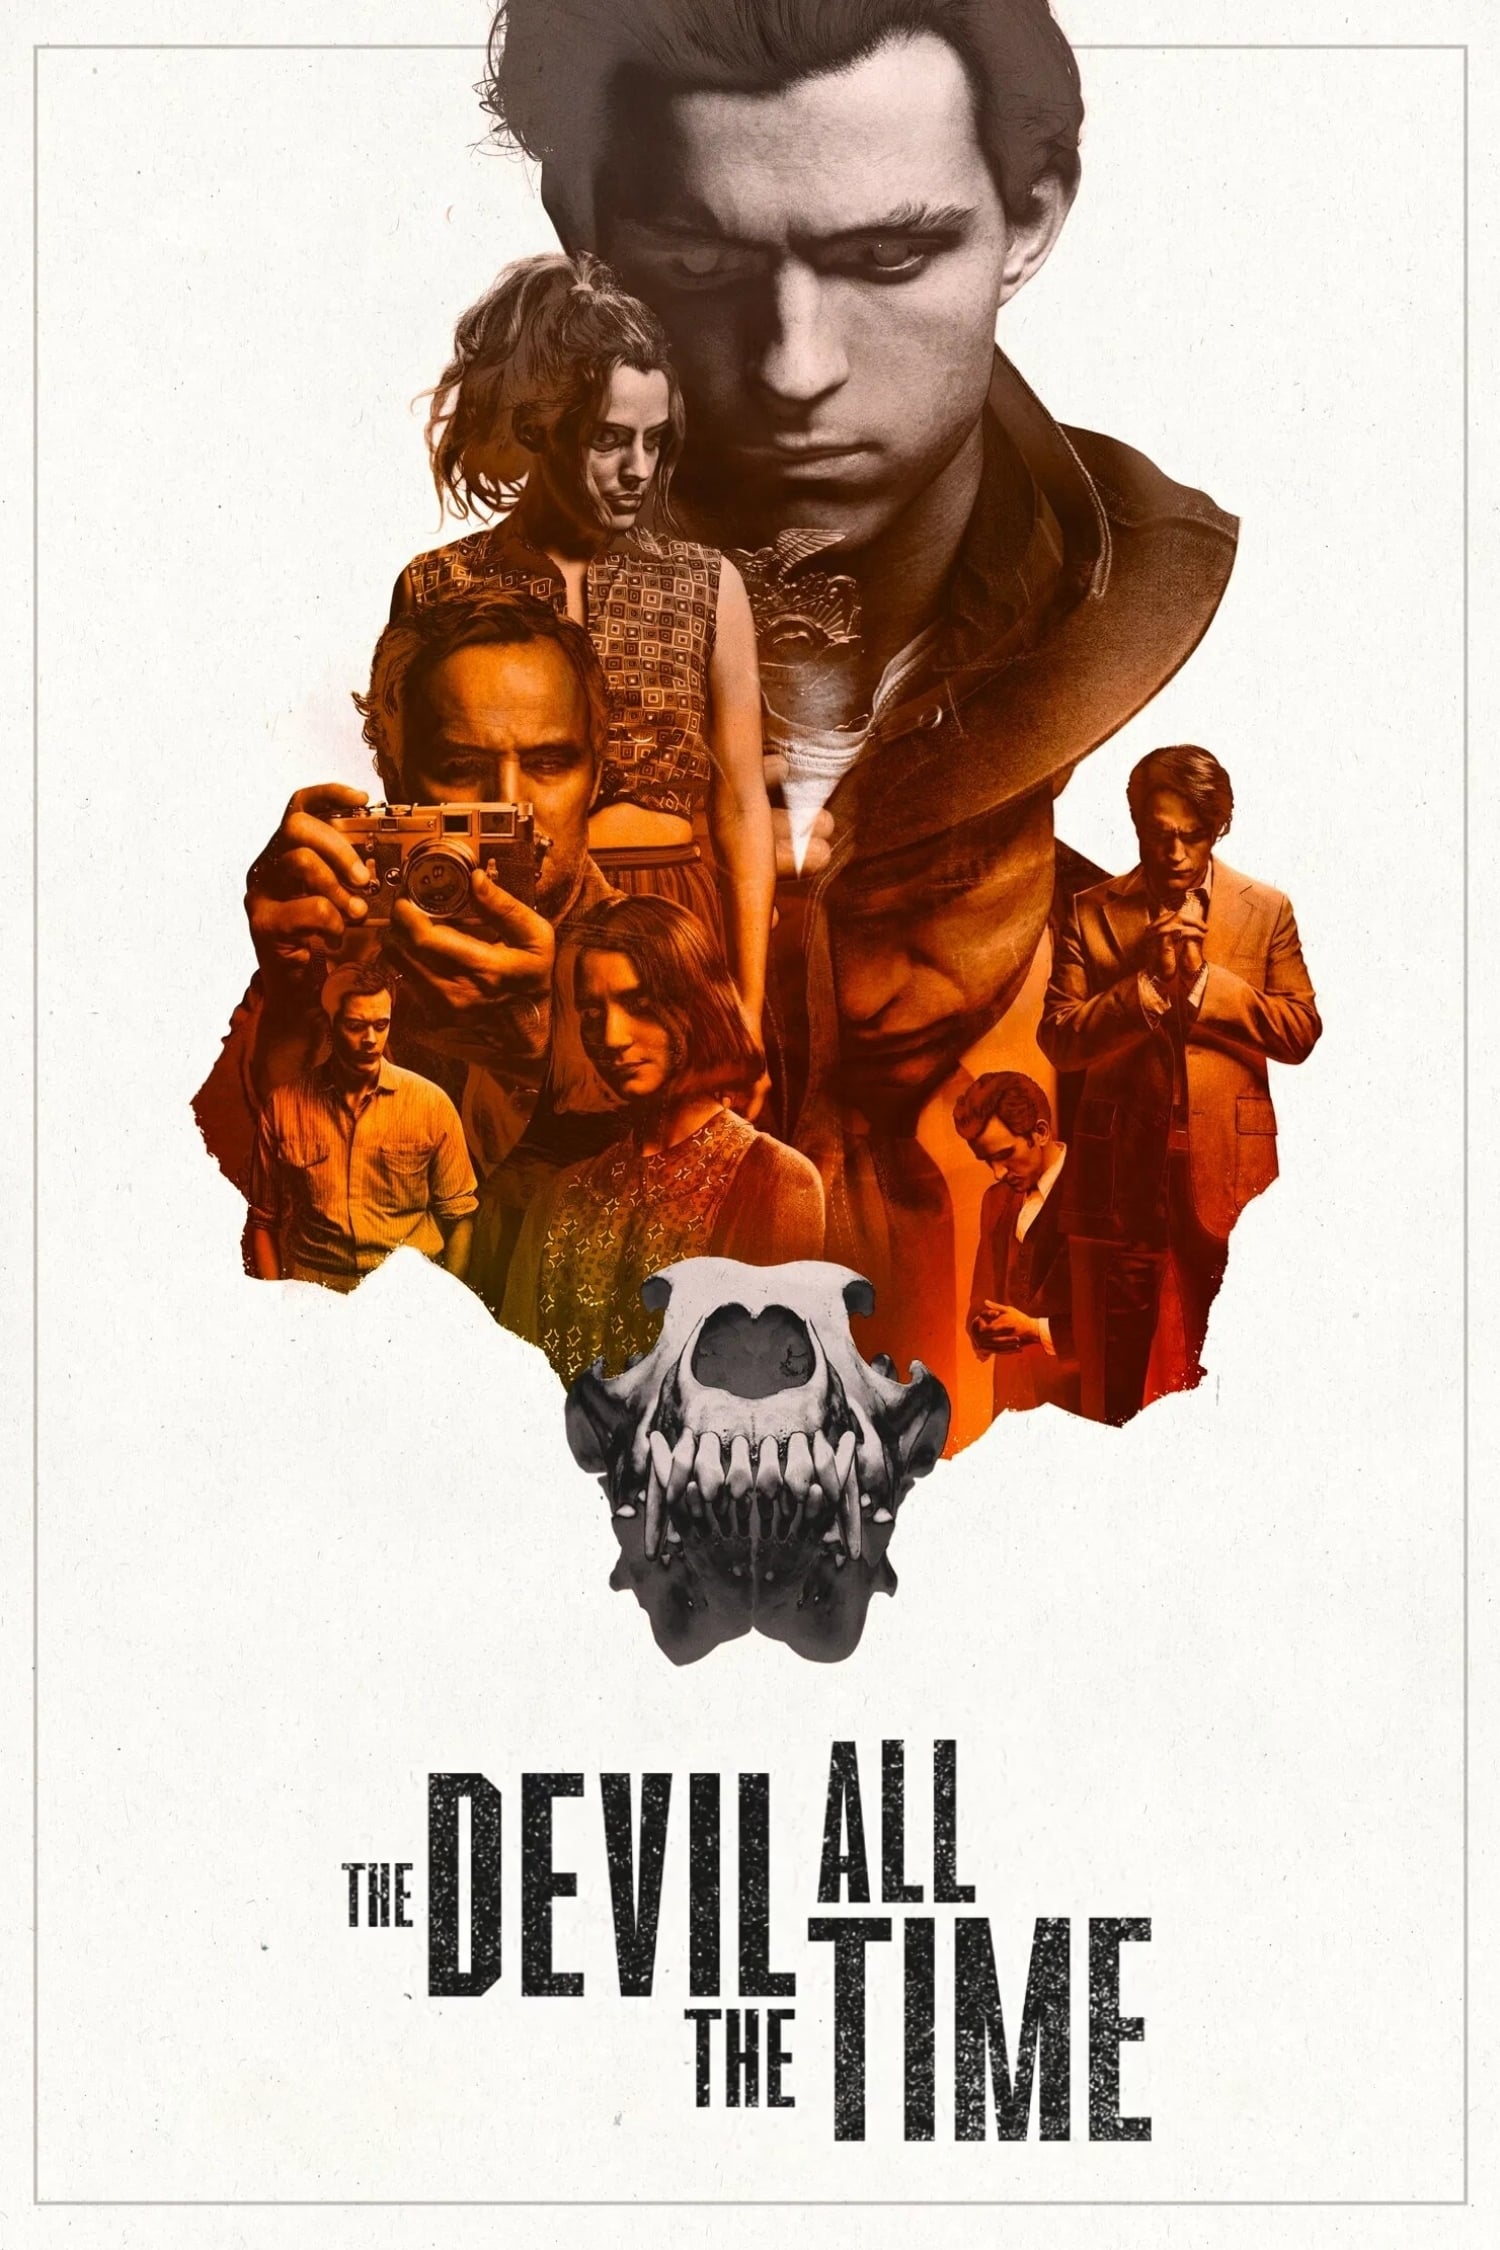 Download The.Devil.All.the.Time.2020.WEBRip.x264-ION10 Torrent | 1337x